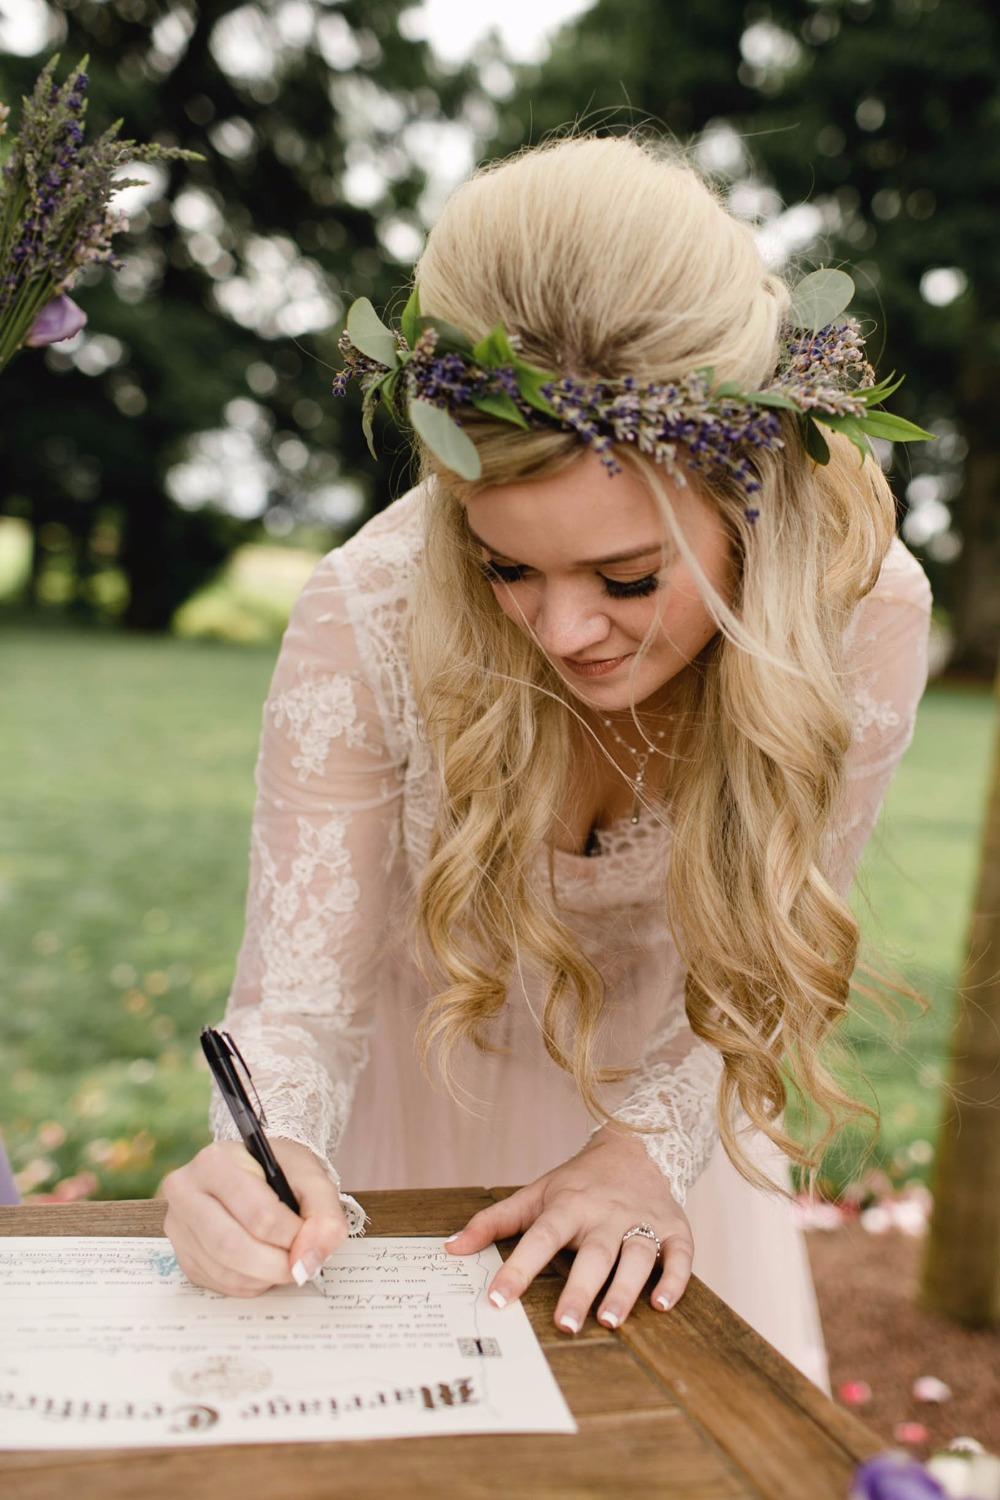 Beautiful wedding hair and floral crown